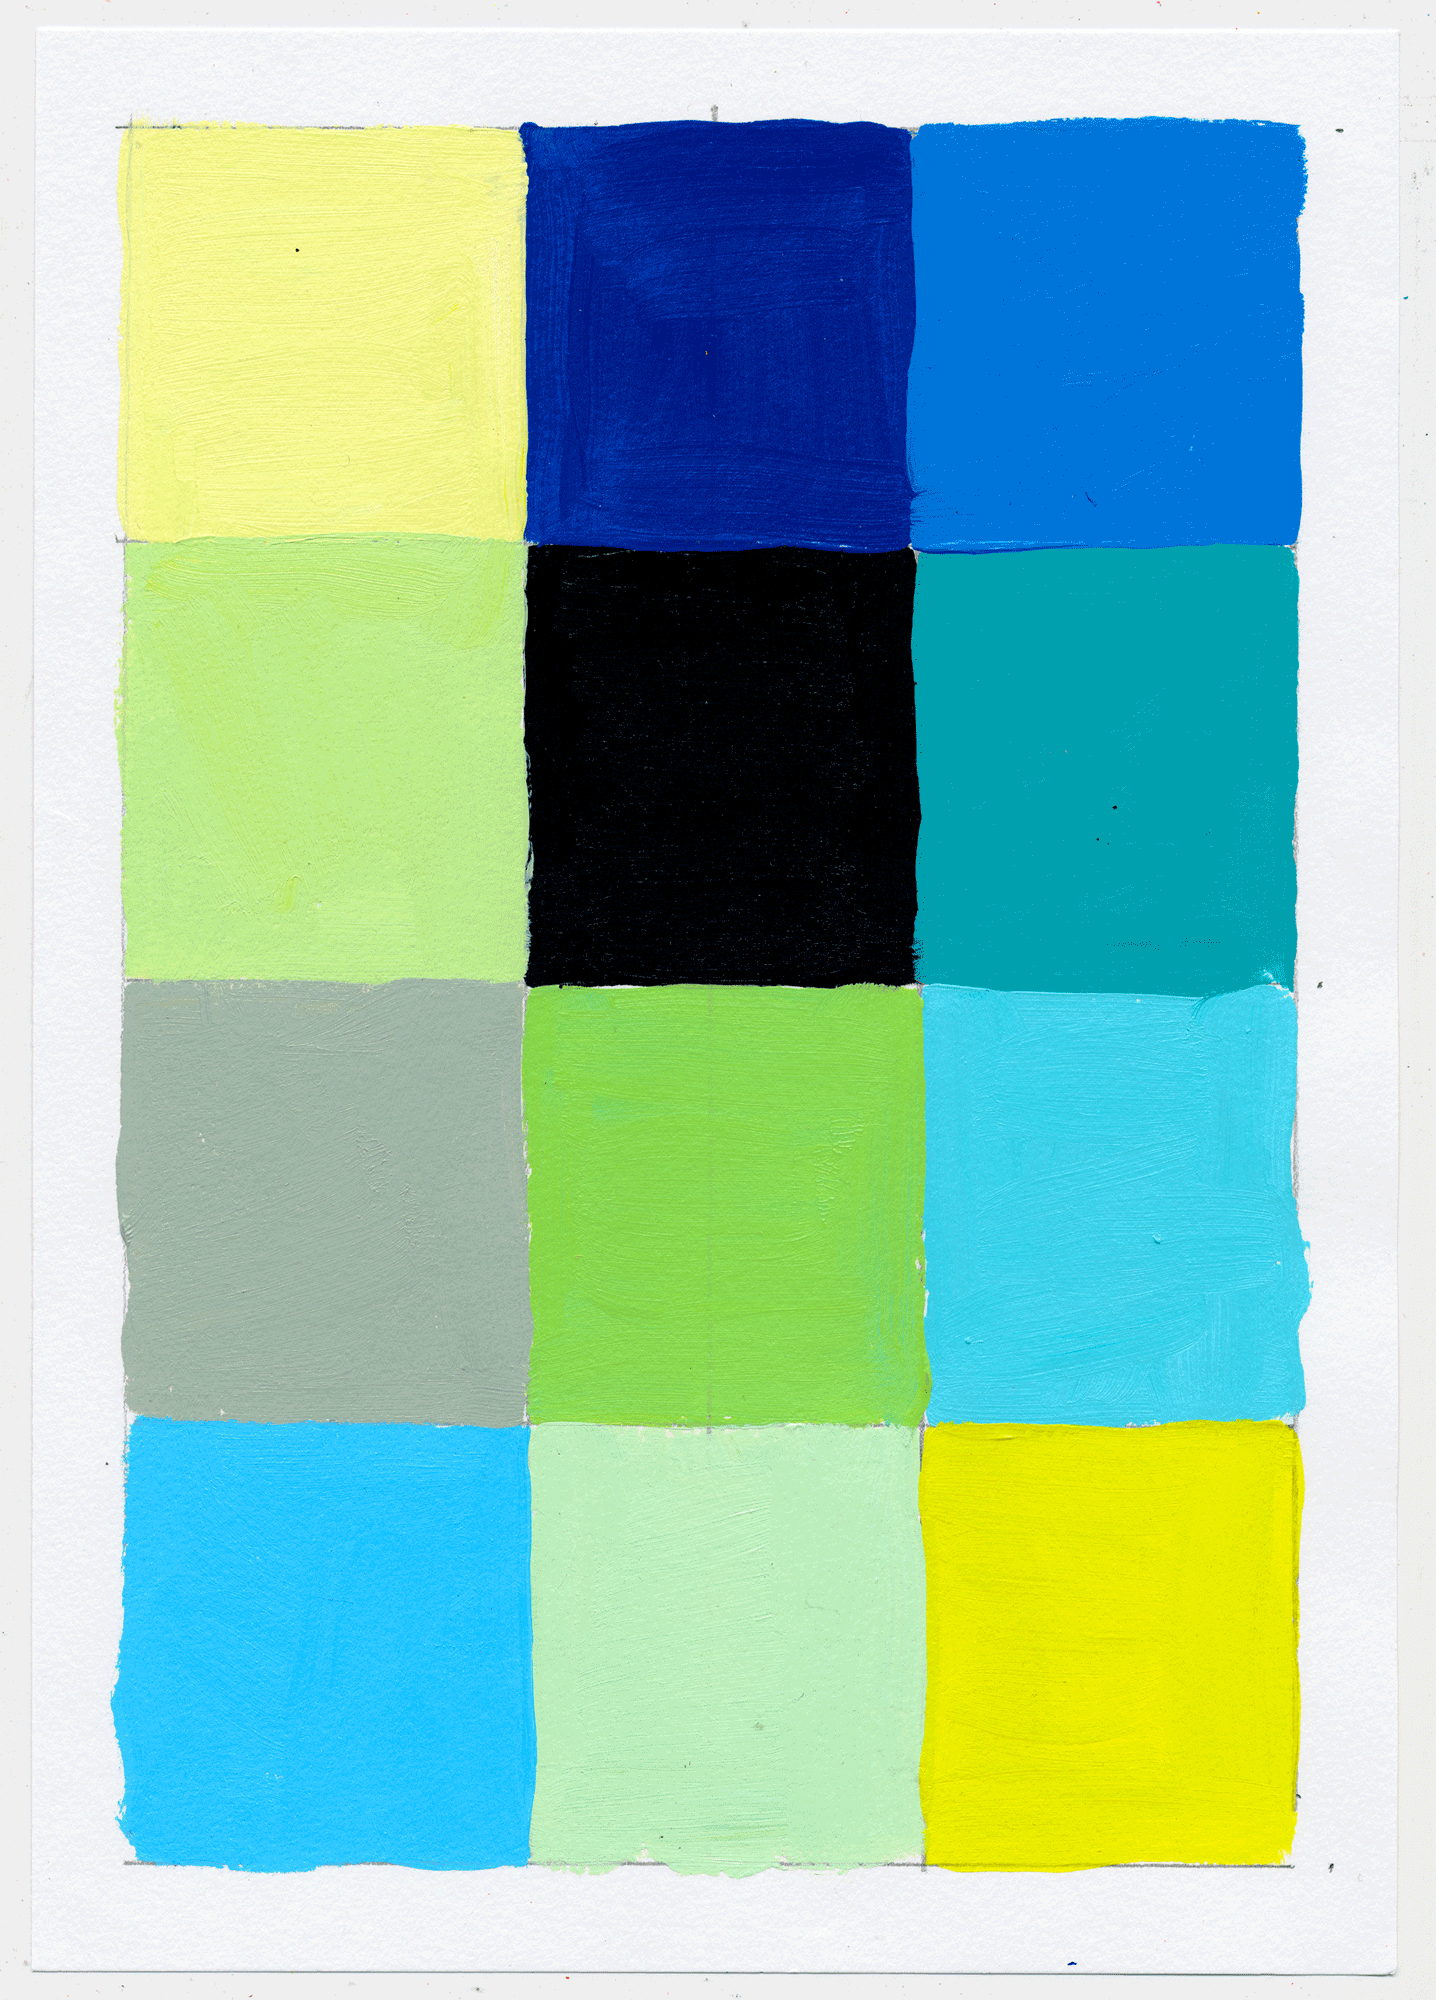 "NY1748 10"" X 7"", acrylic on paper, 2017  available on Etsy   12 little squares to help figure out the intricacies of pink, yellow & blue. there's NEVER an end to  figuring it out,  cuz you don't. PLAY!"